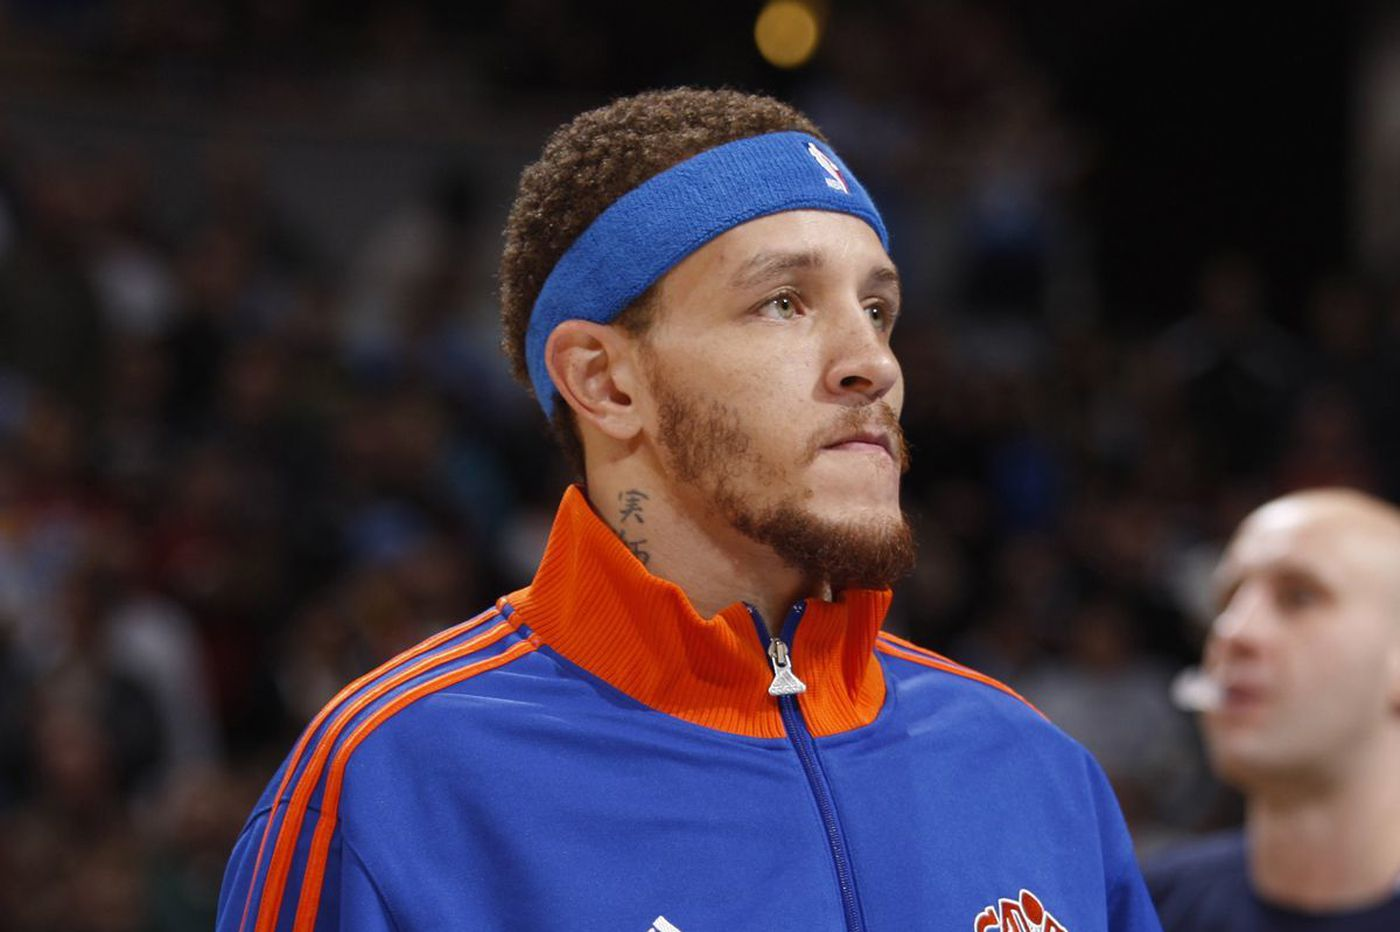 A viral photo showed former St. Joseph's basketball star Delonte West homeless. Dallas Mavericks owner Mark Cuban found him and picked him up.